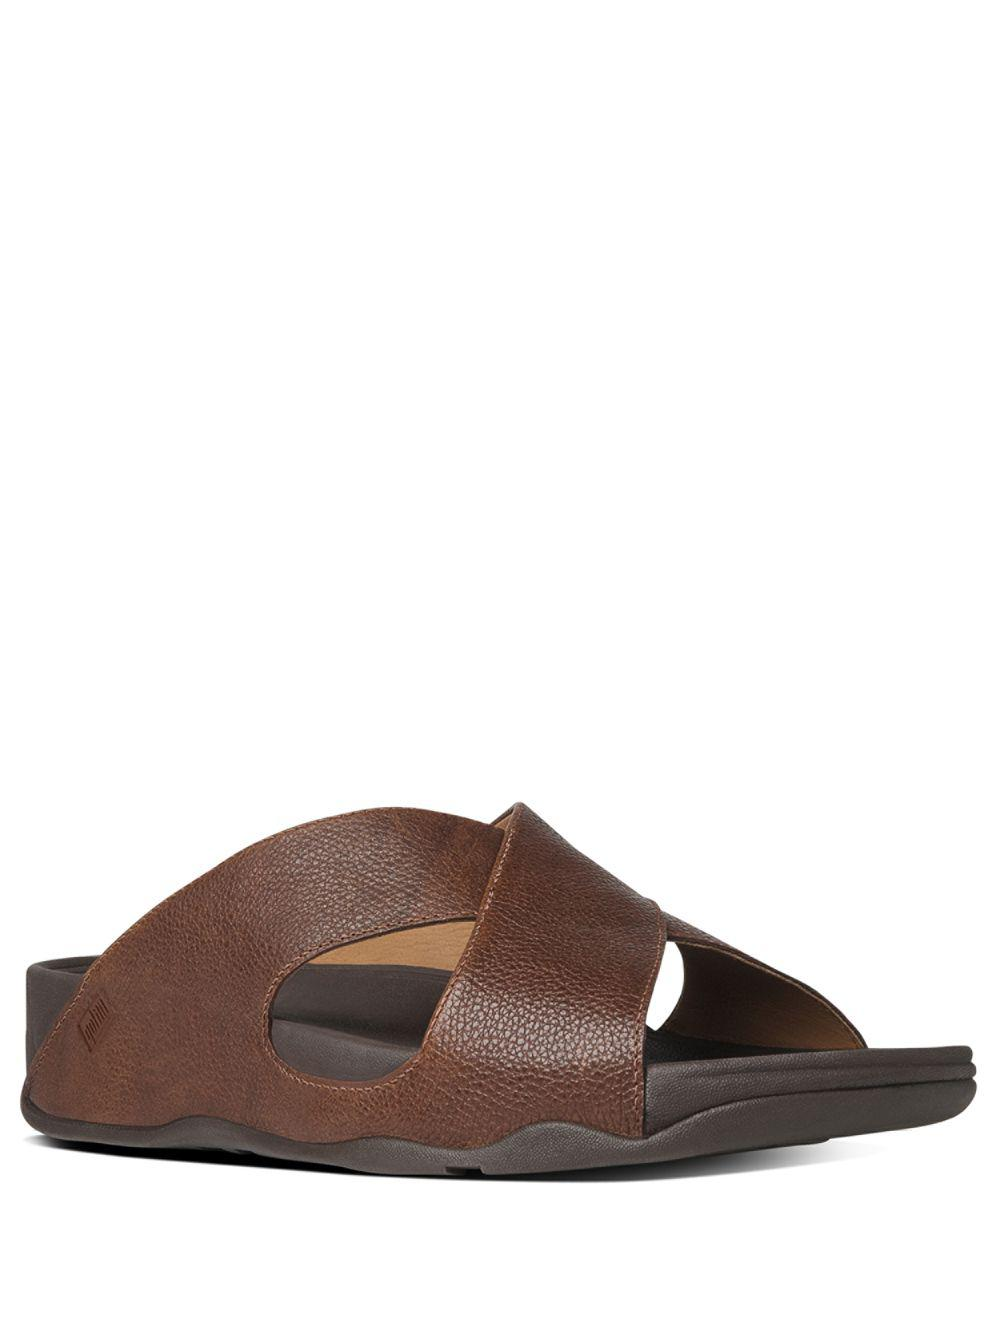 ea61859a1d91 Lyst - Fitflop Xosa Leather Slides in Brown